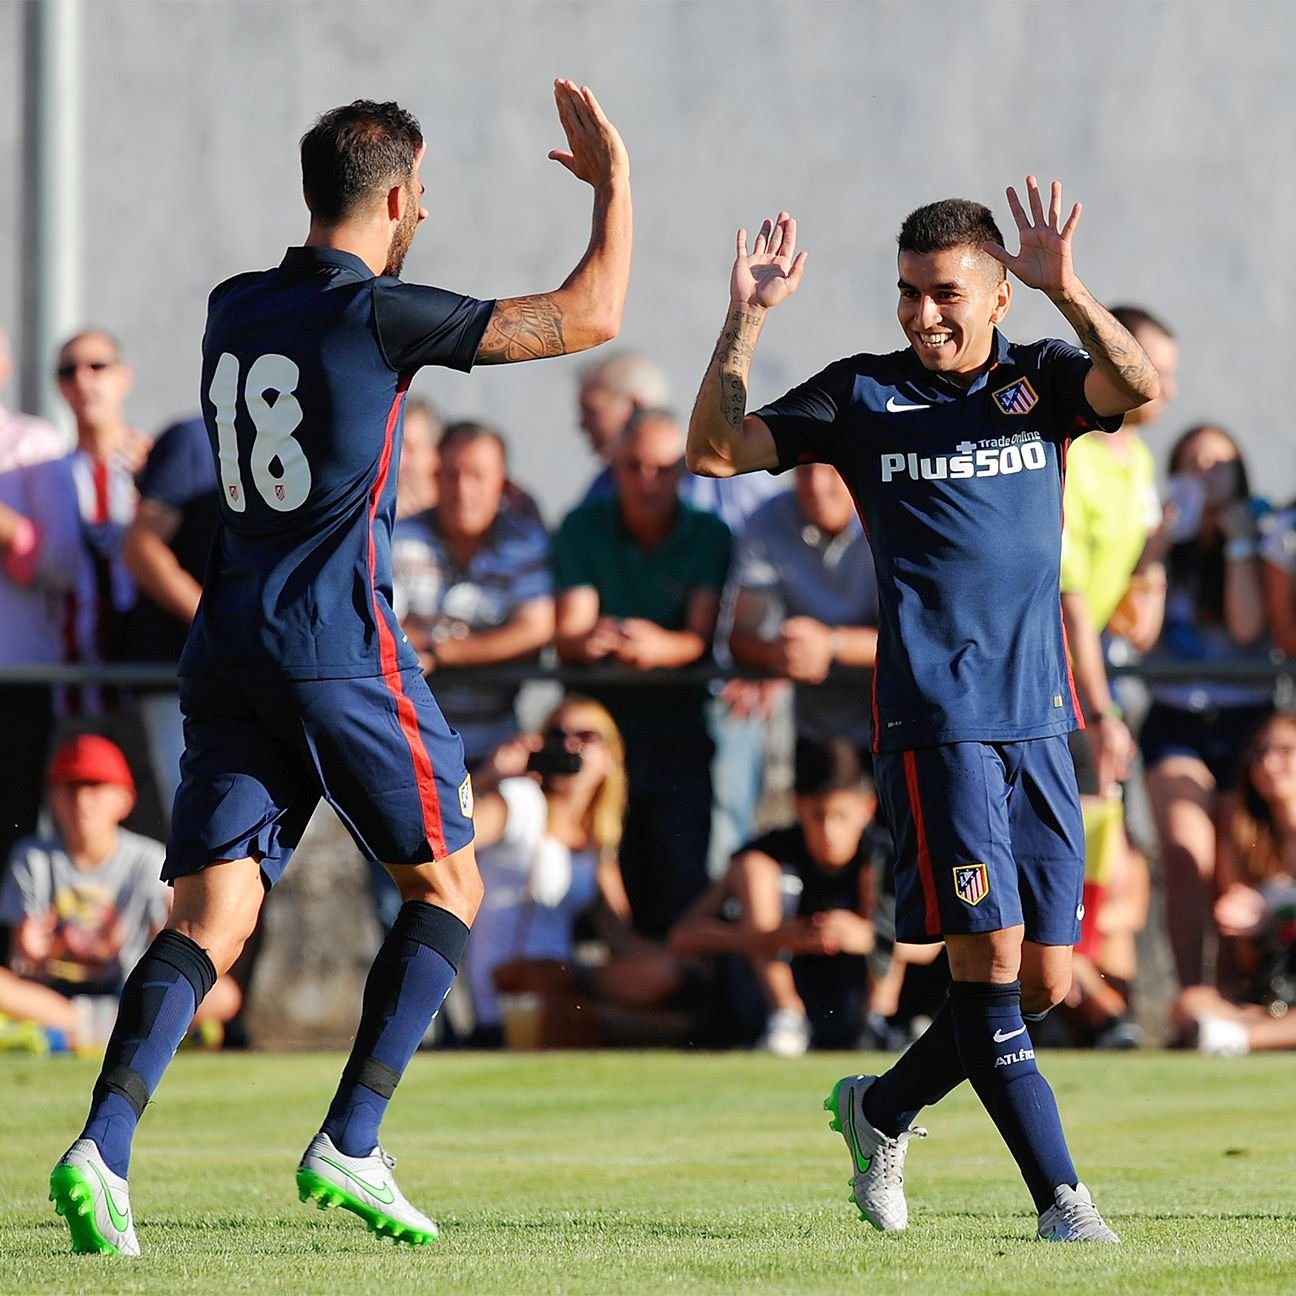 Angel Correa, right, gave a glimpse of his great promise in Atletico's preseason win over Numancia.